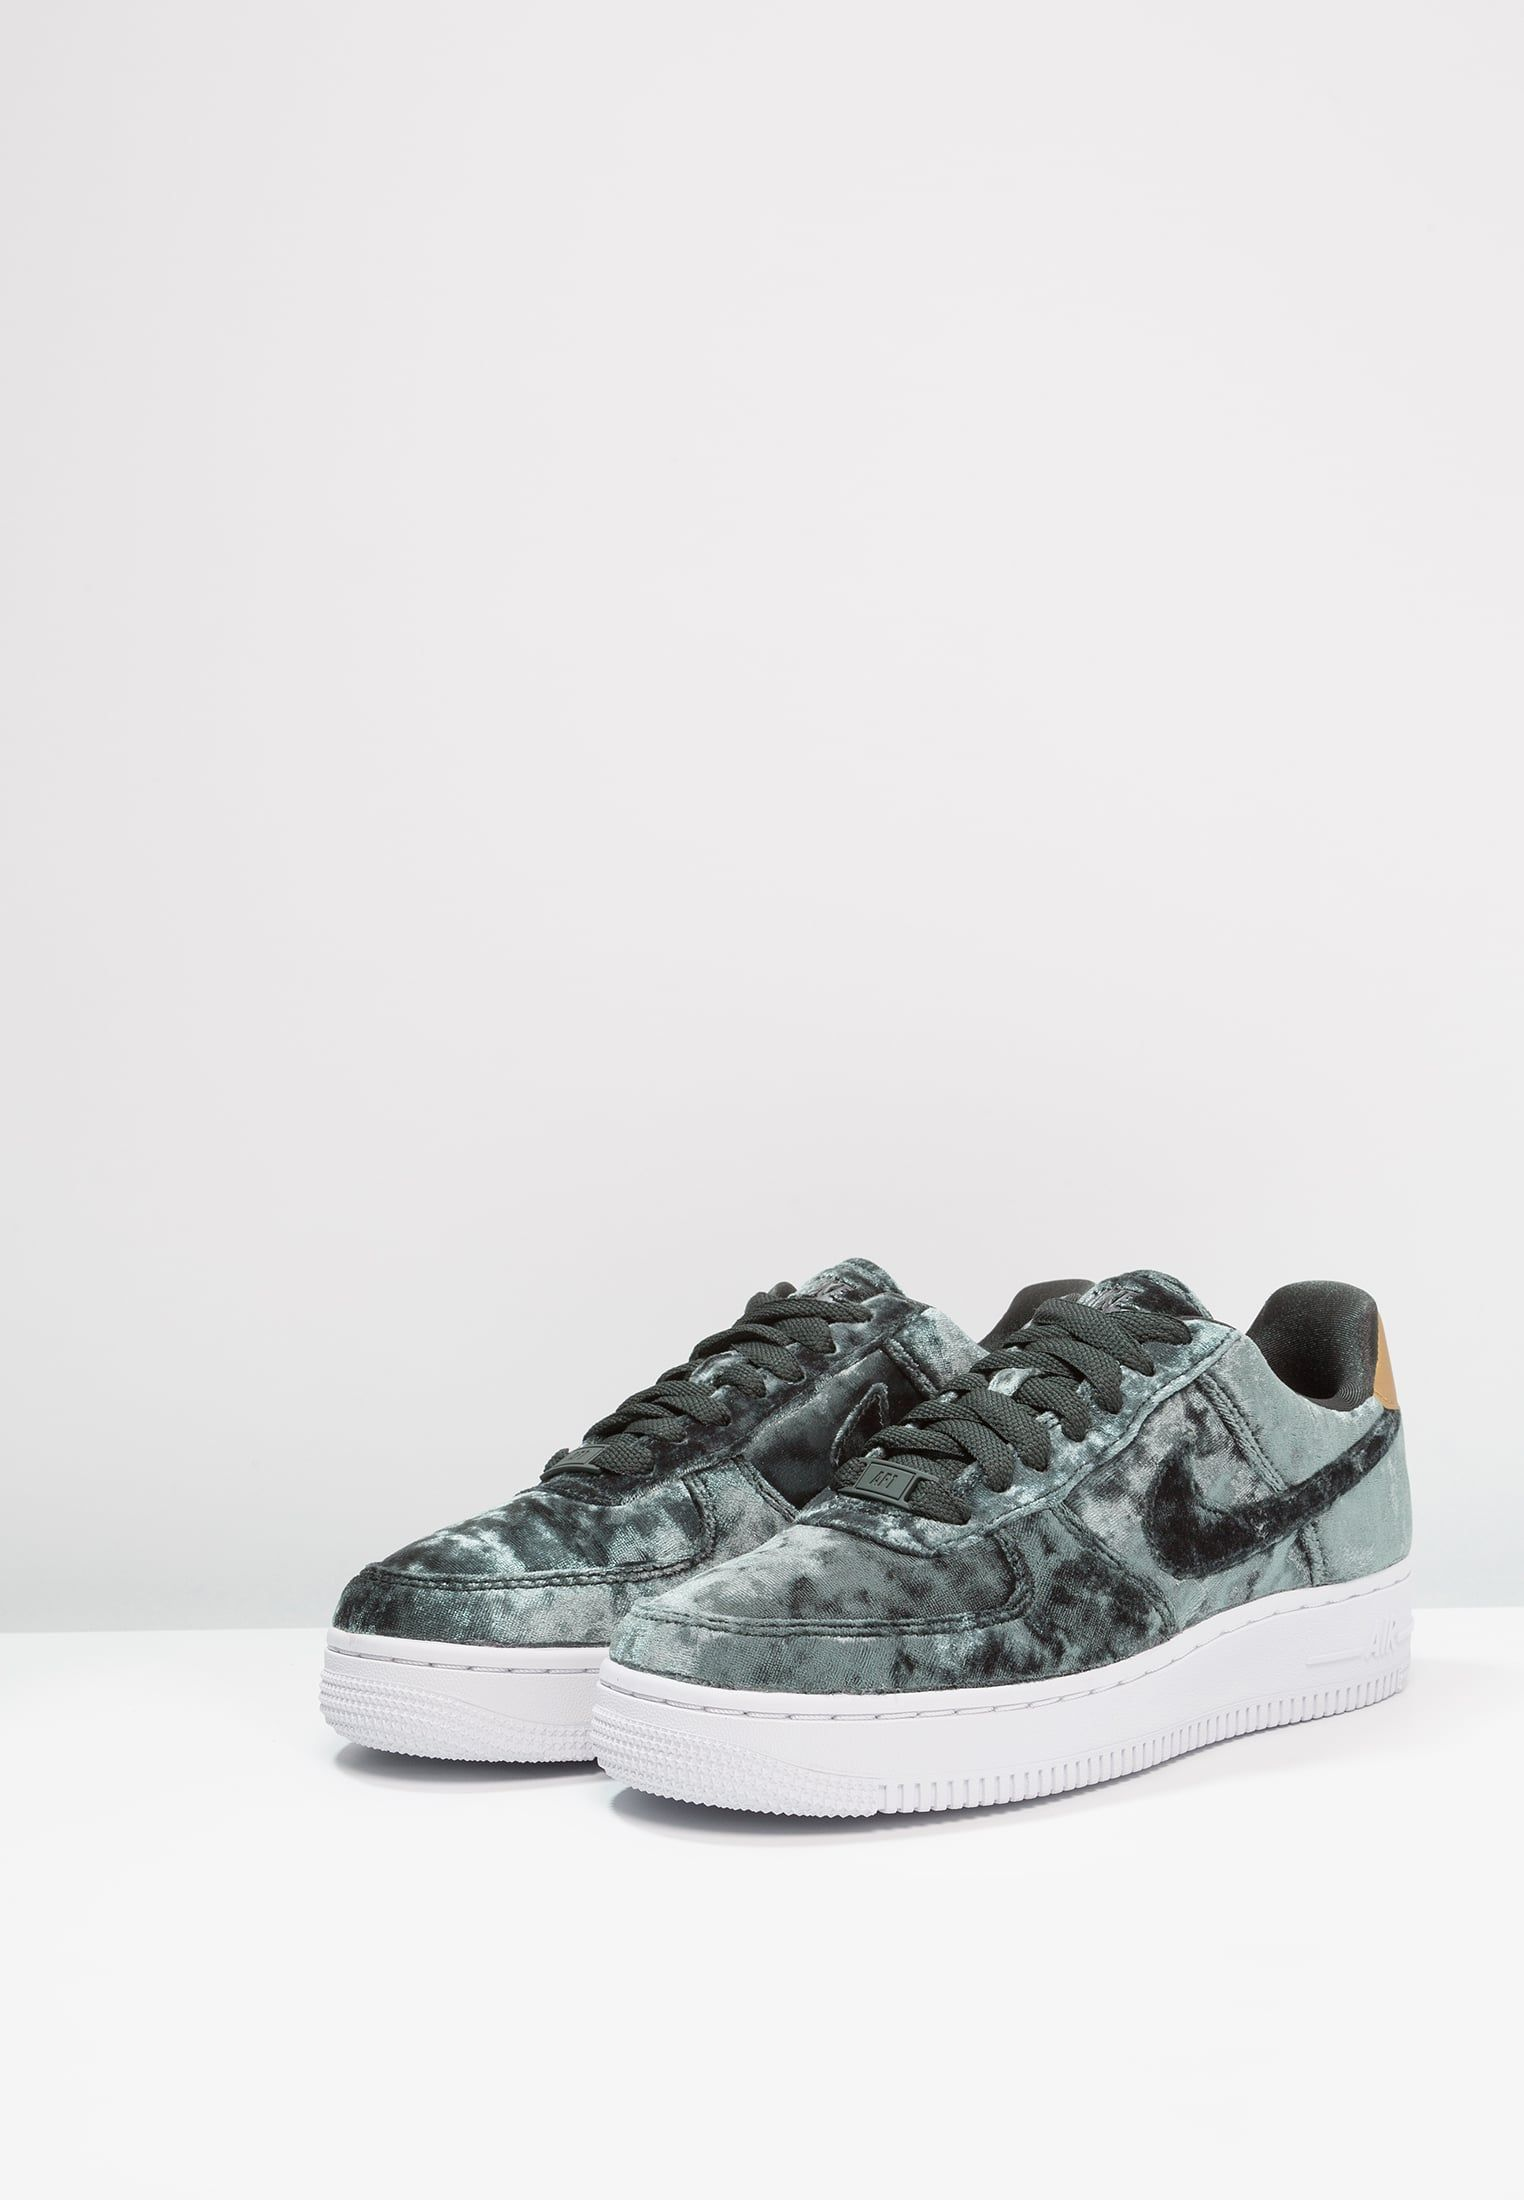 separation shoes 81df8 1a571 Green velvet Air force - Nike